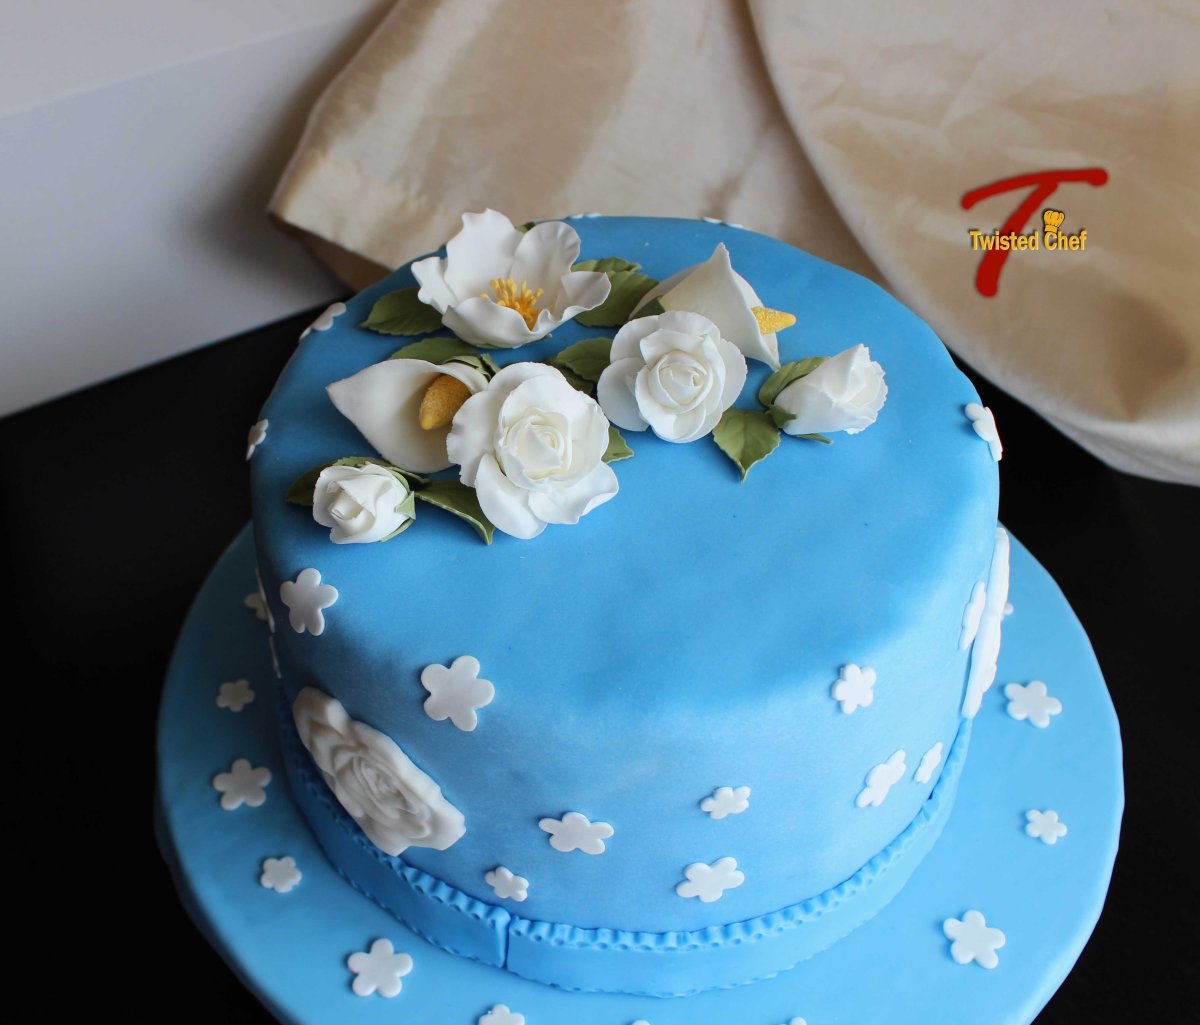 How To Design Cake Using Fondant : Wilton Cake Decorating Course 3: Gum Paste and Fondant ...